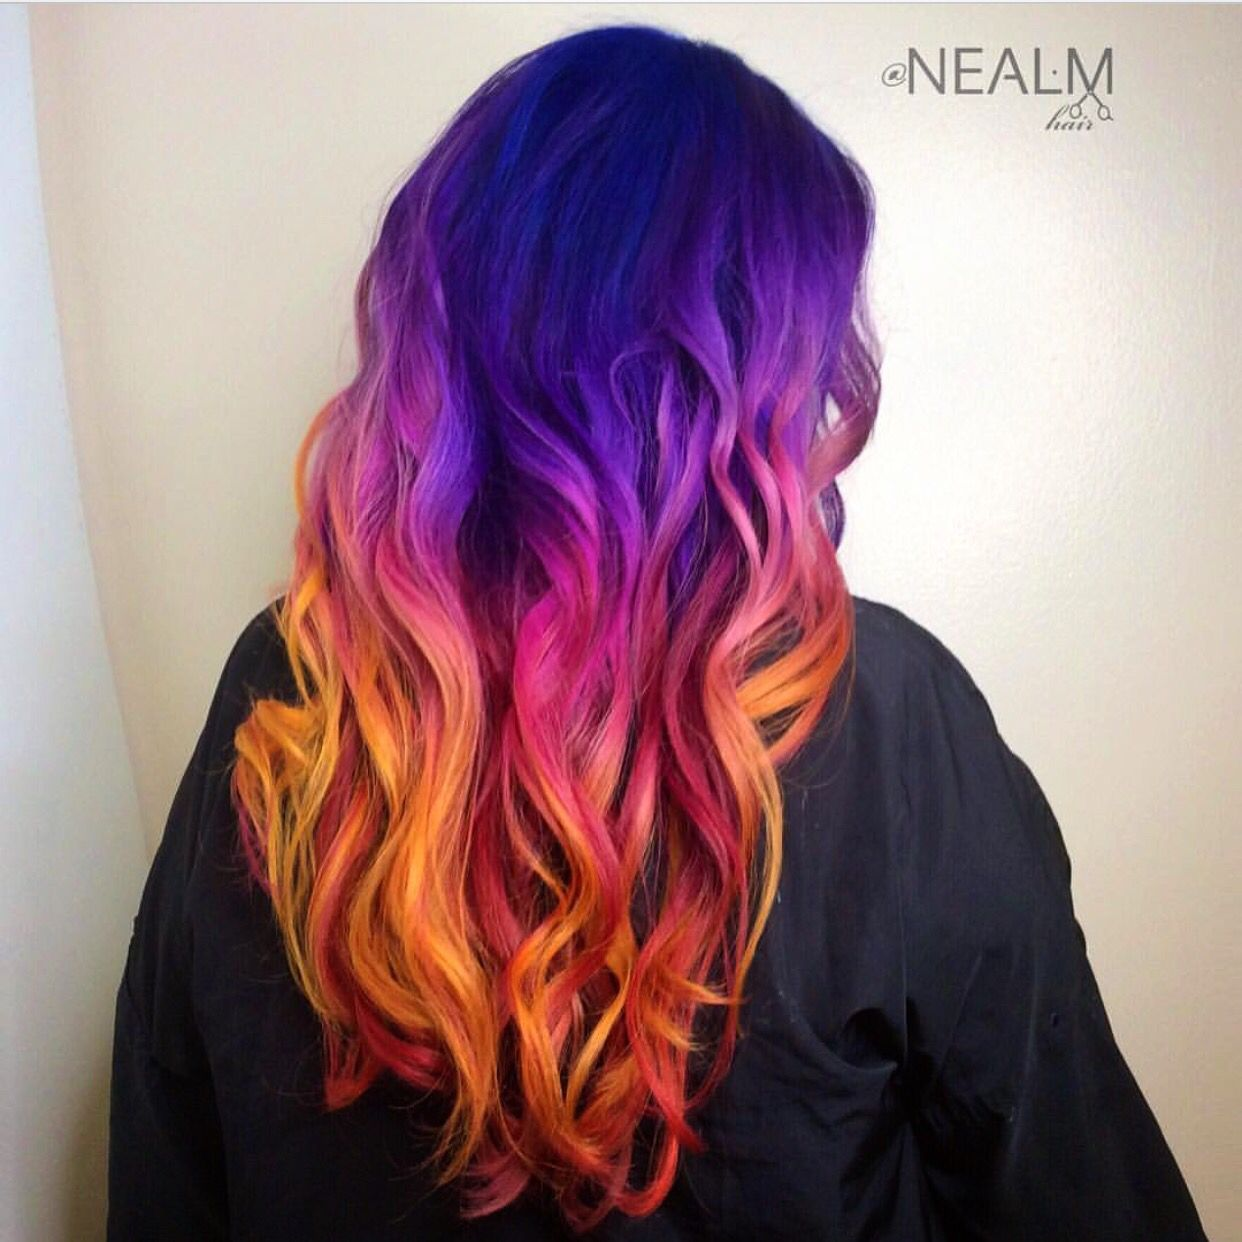 Mermaid Hair Sunset Hair Purple Hair Orange Hair Rainbow Hair